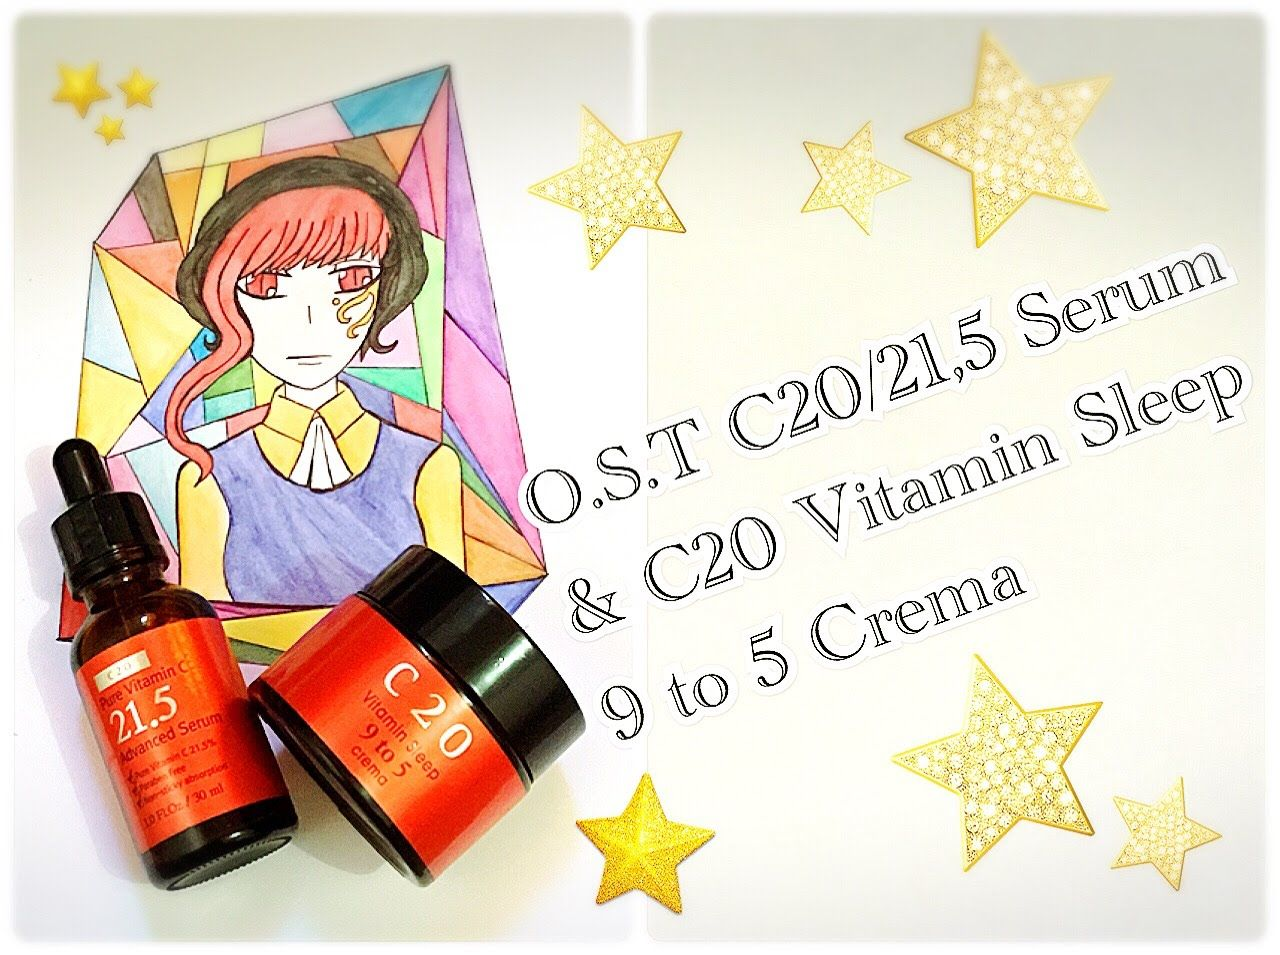 O.S.T C20 / C21,5 Vit C Serum & C20 Vit Sleep Crema REVIEW! | Skincare R...